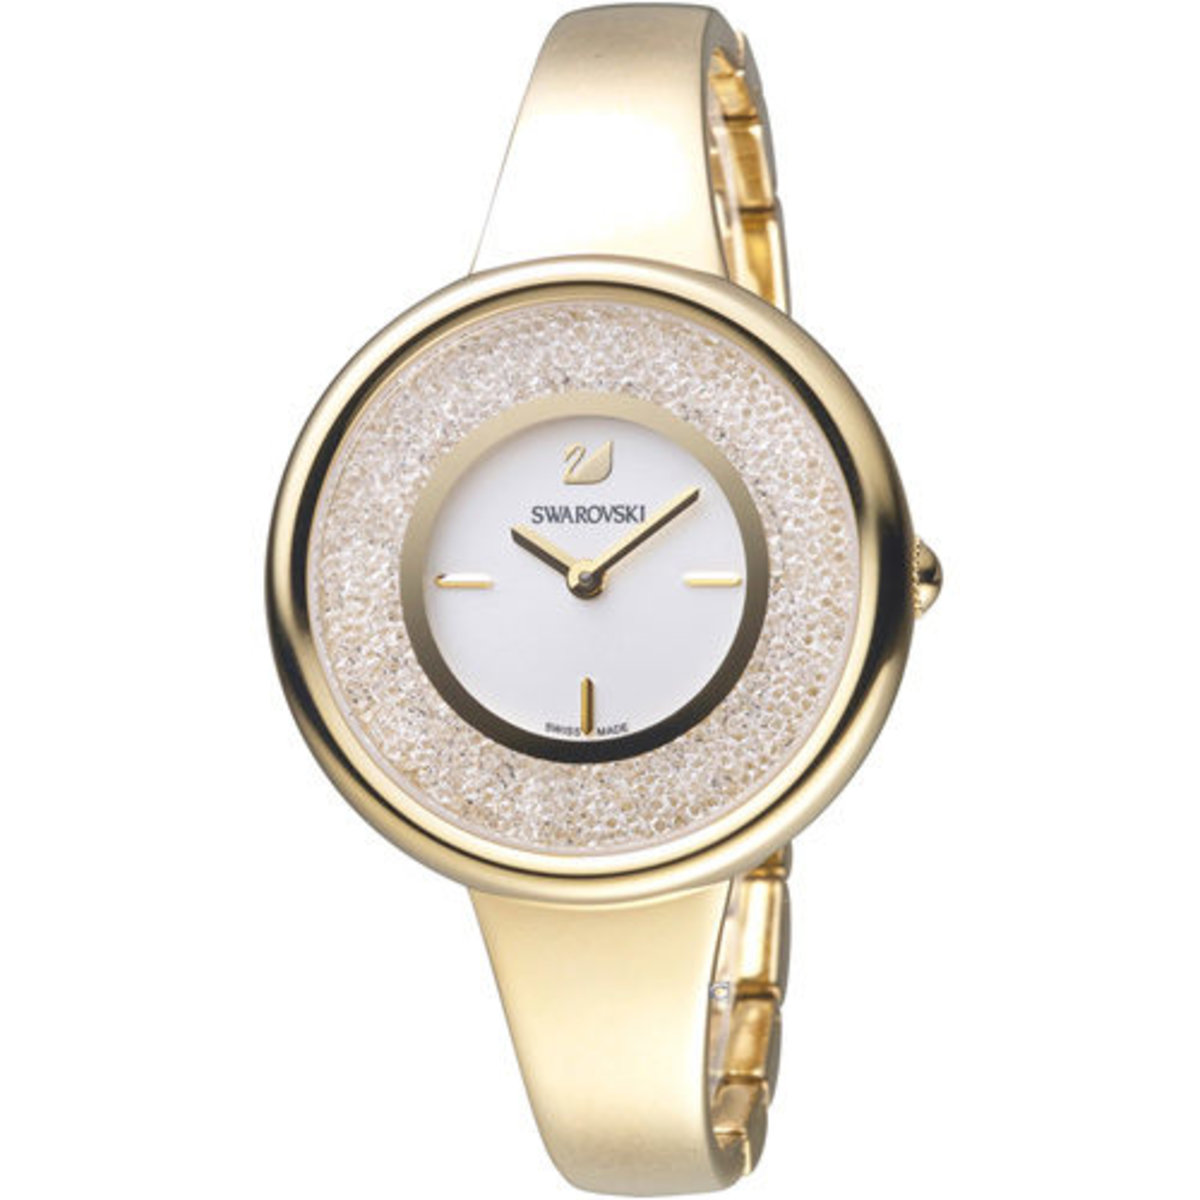 Crystalline Pure - Ladies Watch - 5269253 (平行進口貨品)